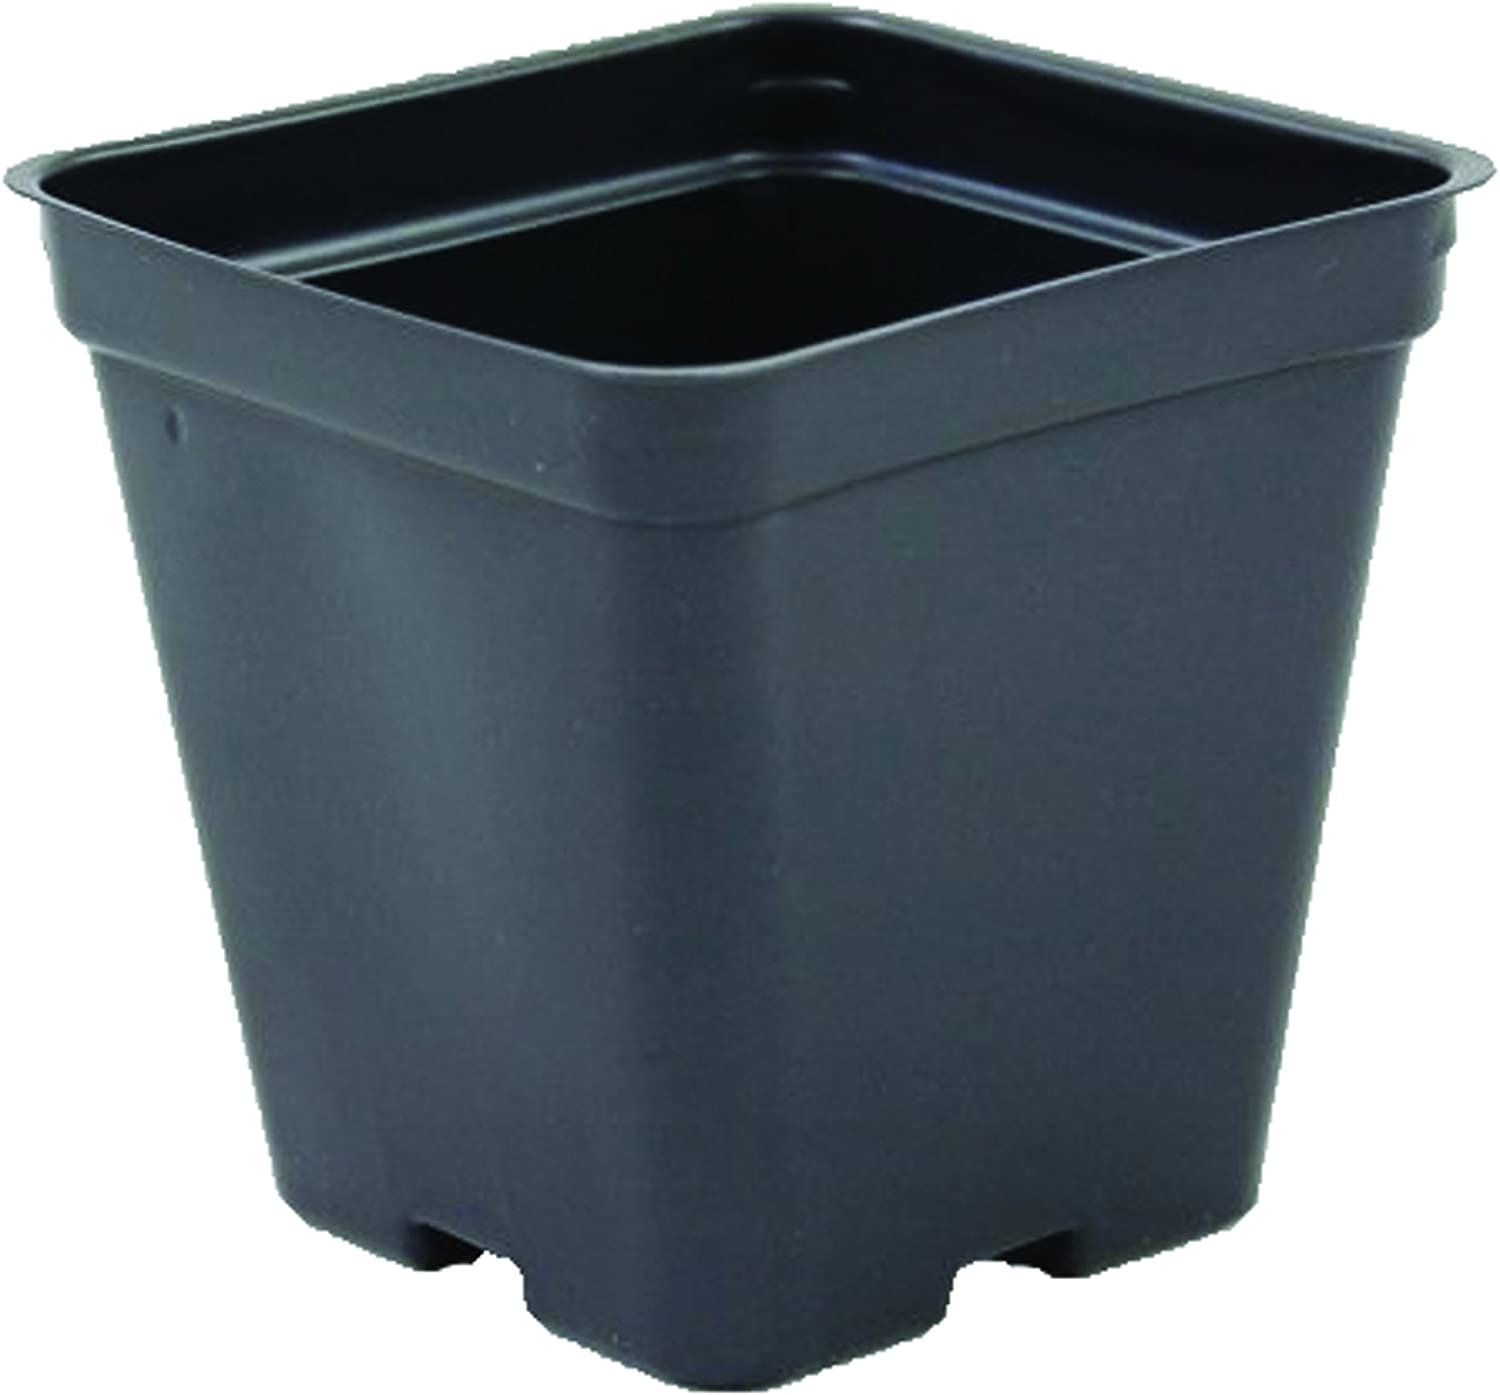 Square Greenhouse Pots 3.5 inch x 3.5 inch- Black – Plastic – Deep – Case of 450 by Growers Solution